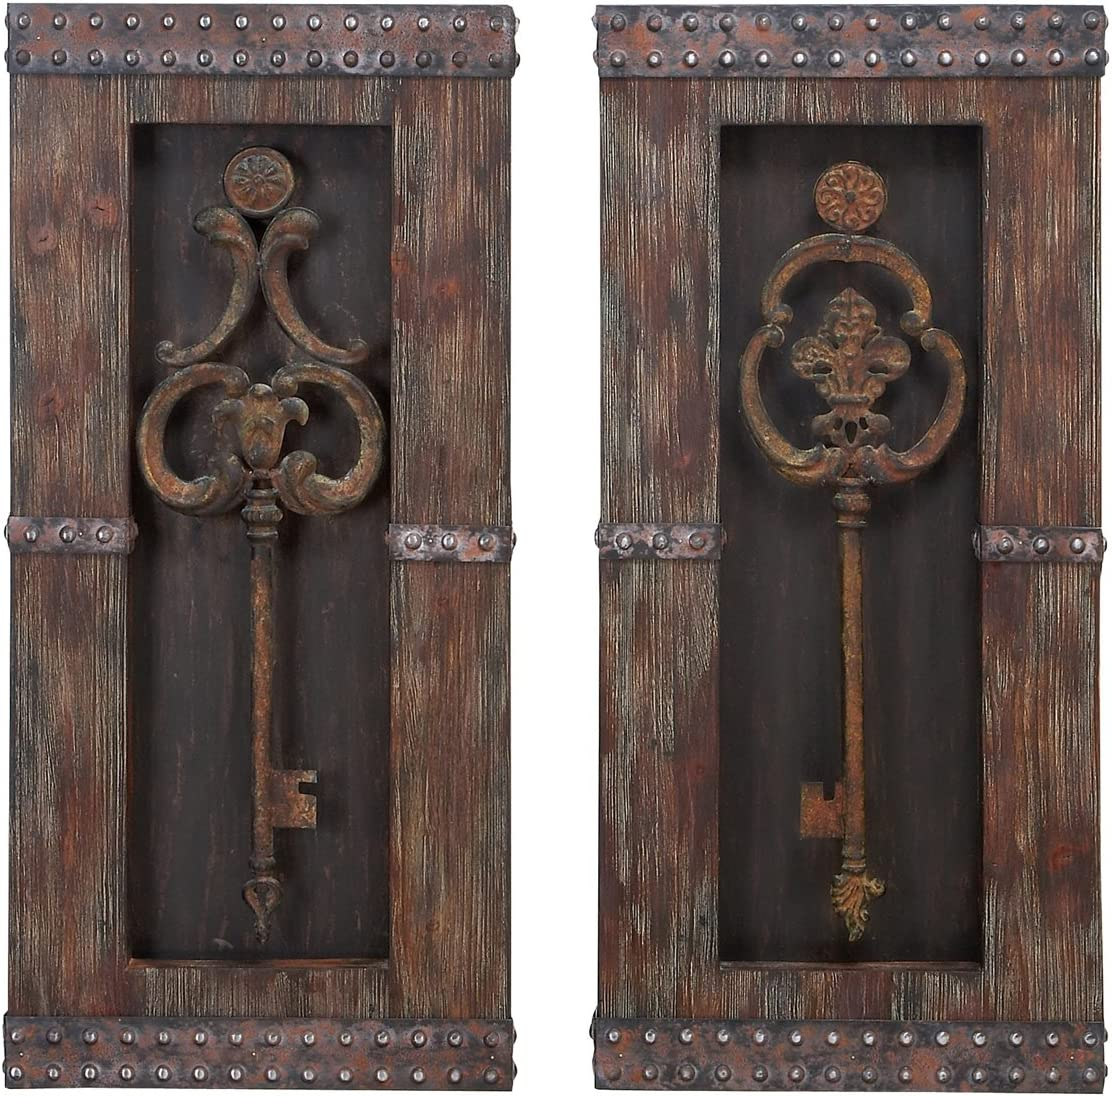 Urban Designs 2 Piece Vintage Metal Keys Wall Art Decor Set, Brown